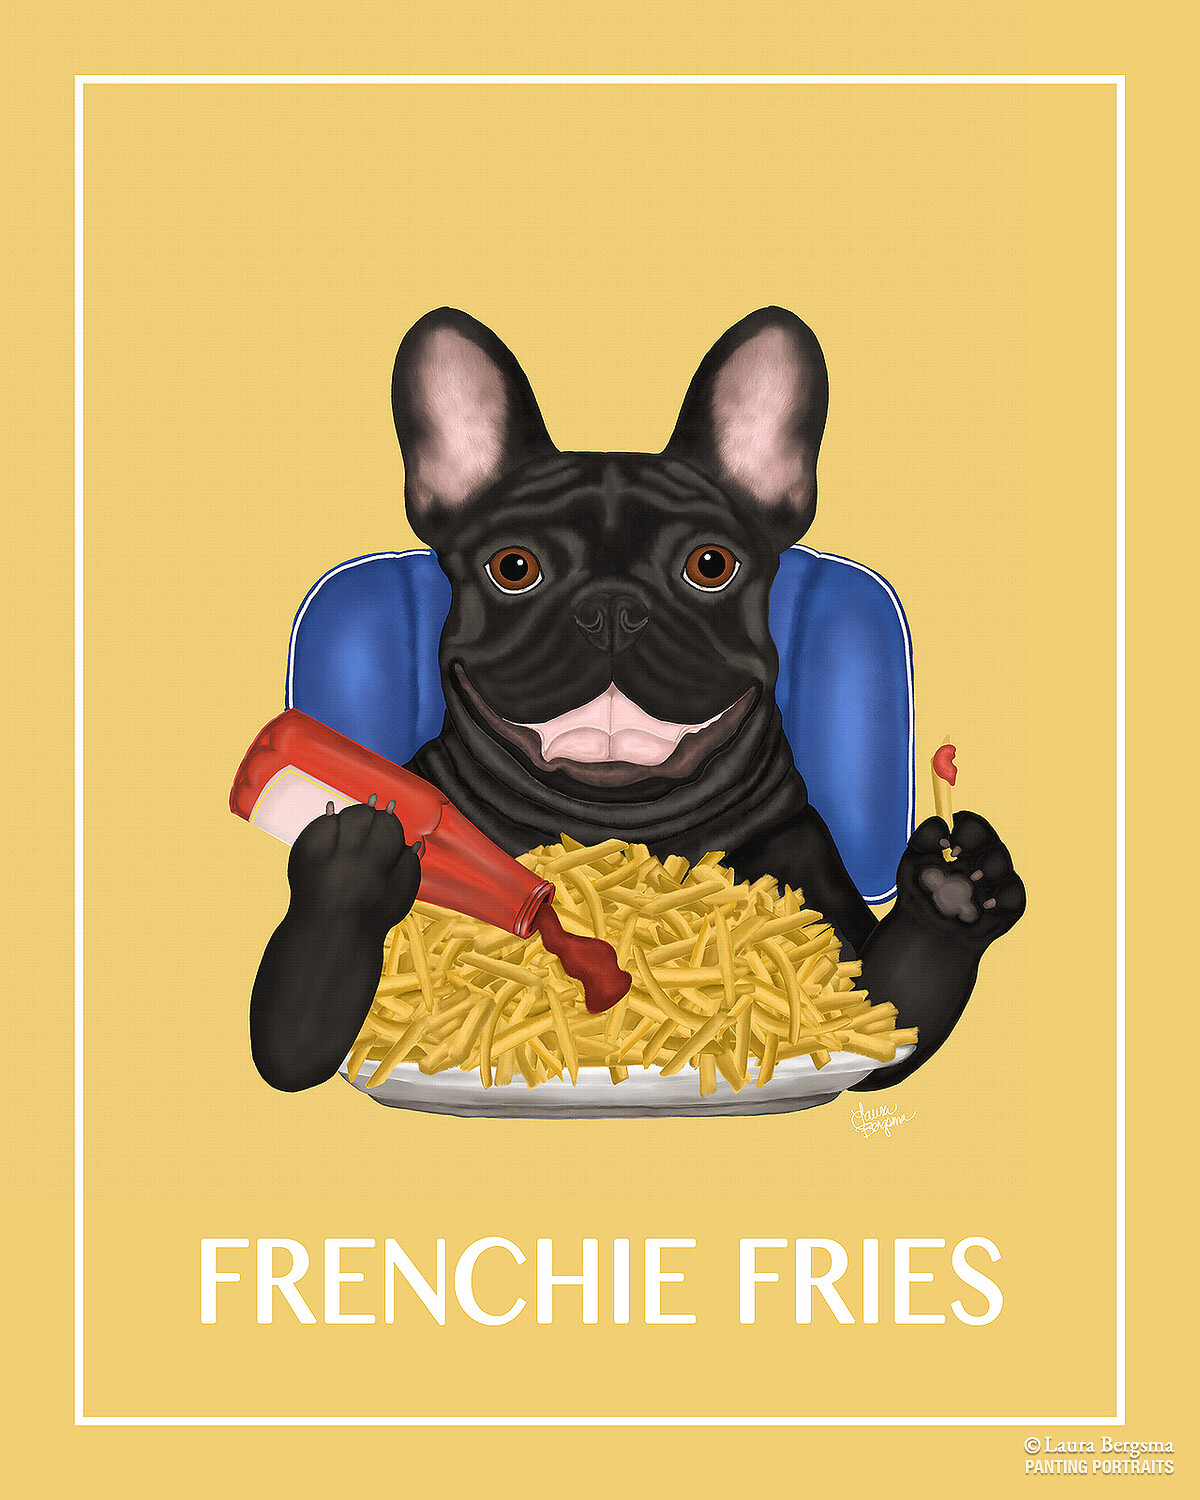 Painting of a Frenchie eating some fries